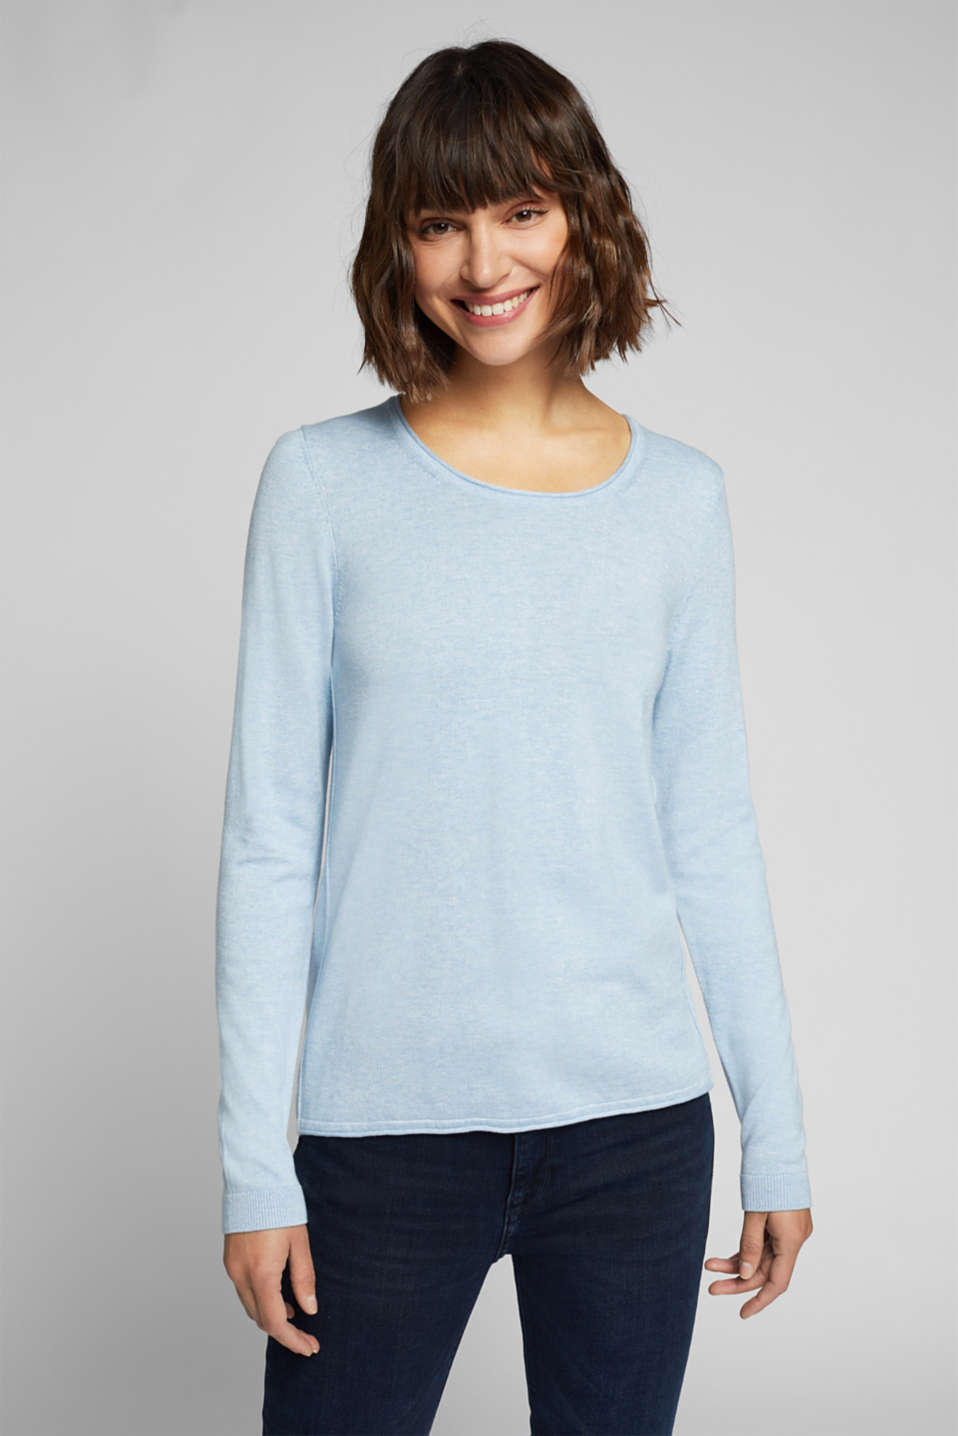 edc - Basic crewneck jumper, organic cotton